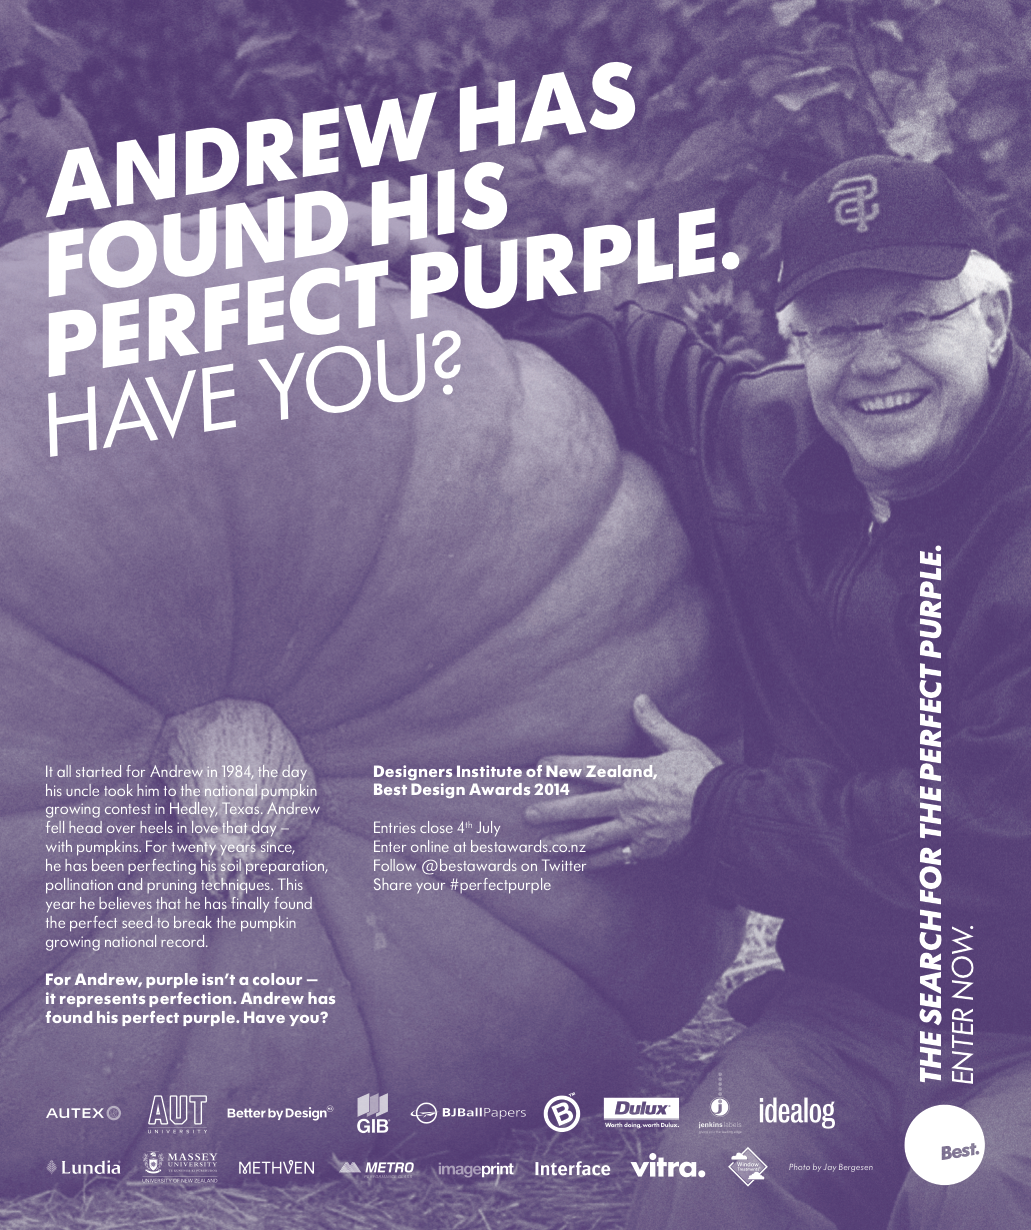 Andrew has found his #perfectpurple Have you?  Bestawards.co.nz